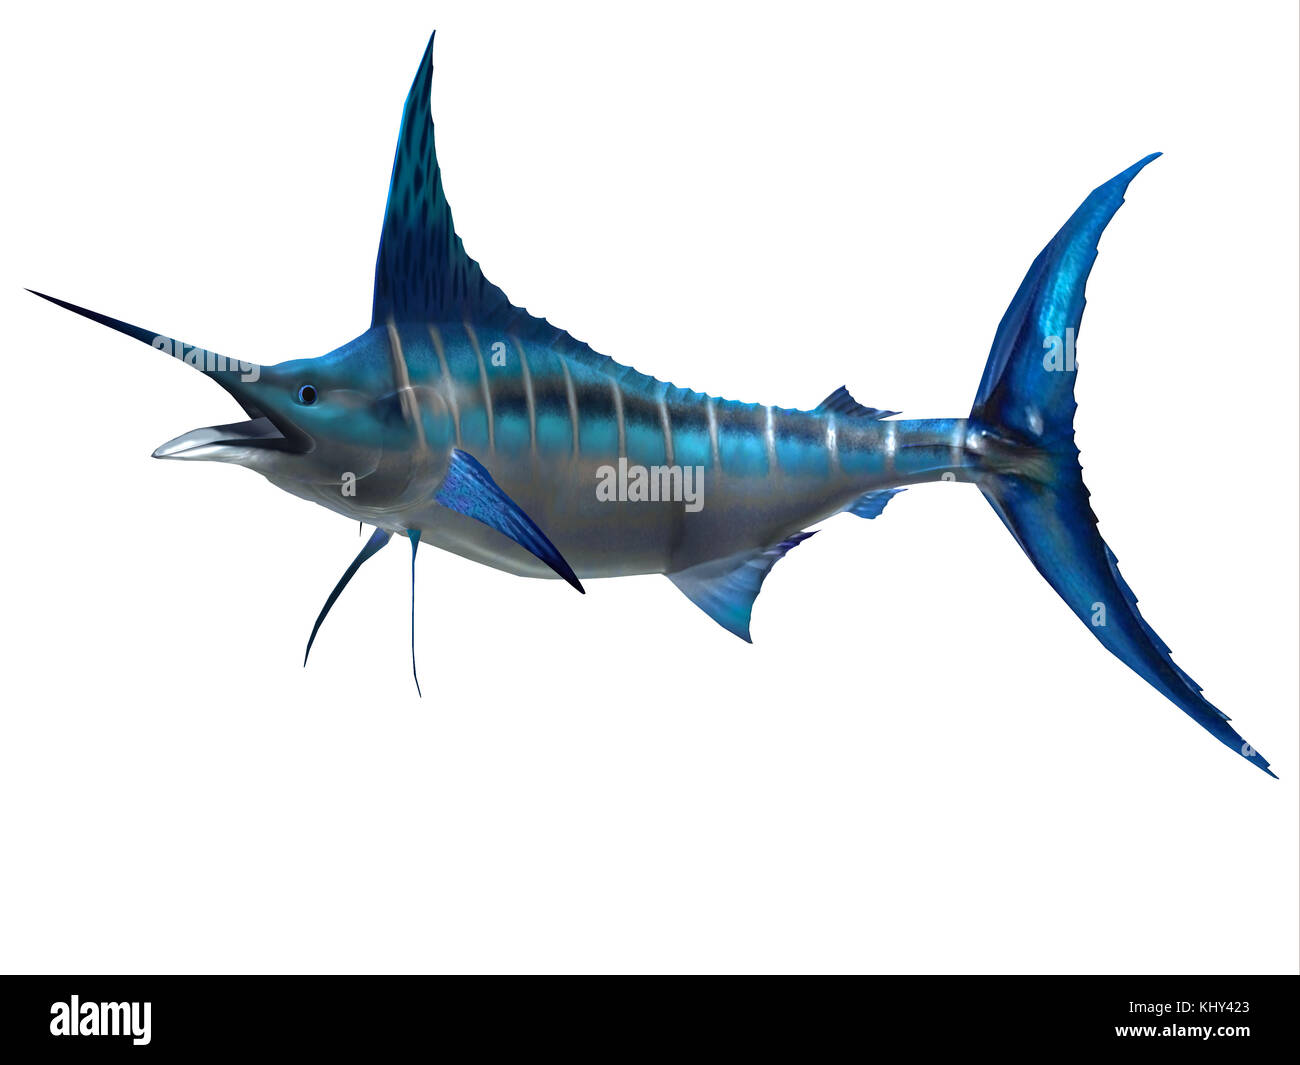 Marlin Sport Fish - The Blue Marlin is a favorite fish of sport fishermen and one of the predators of the Atlantic - Stock Image